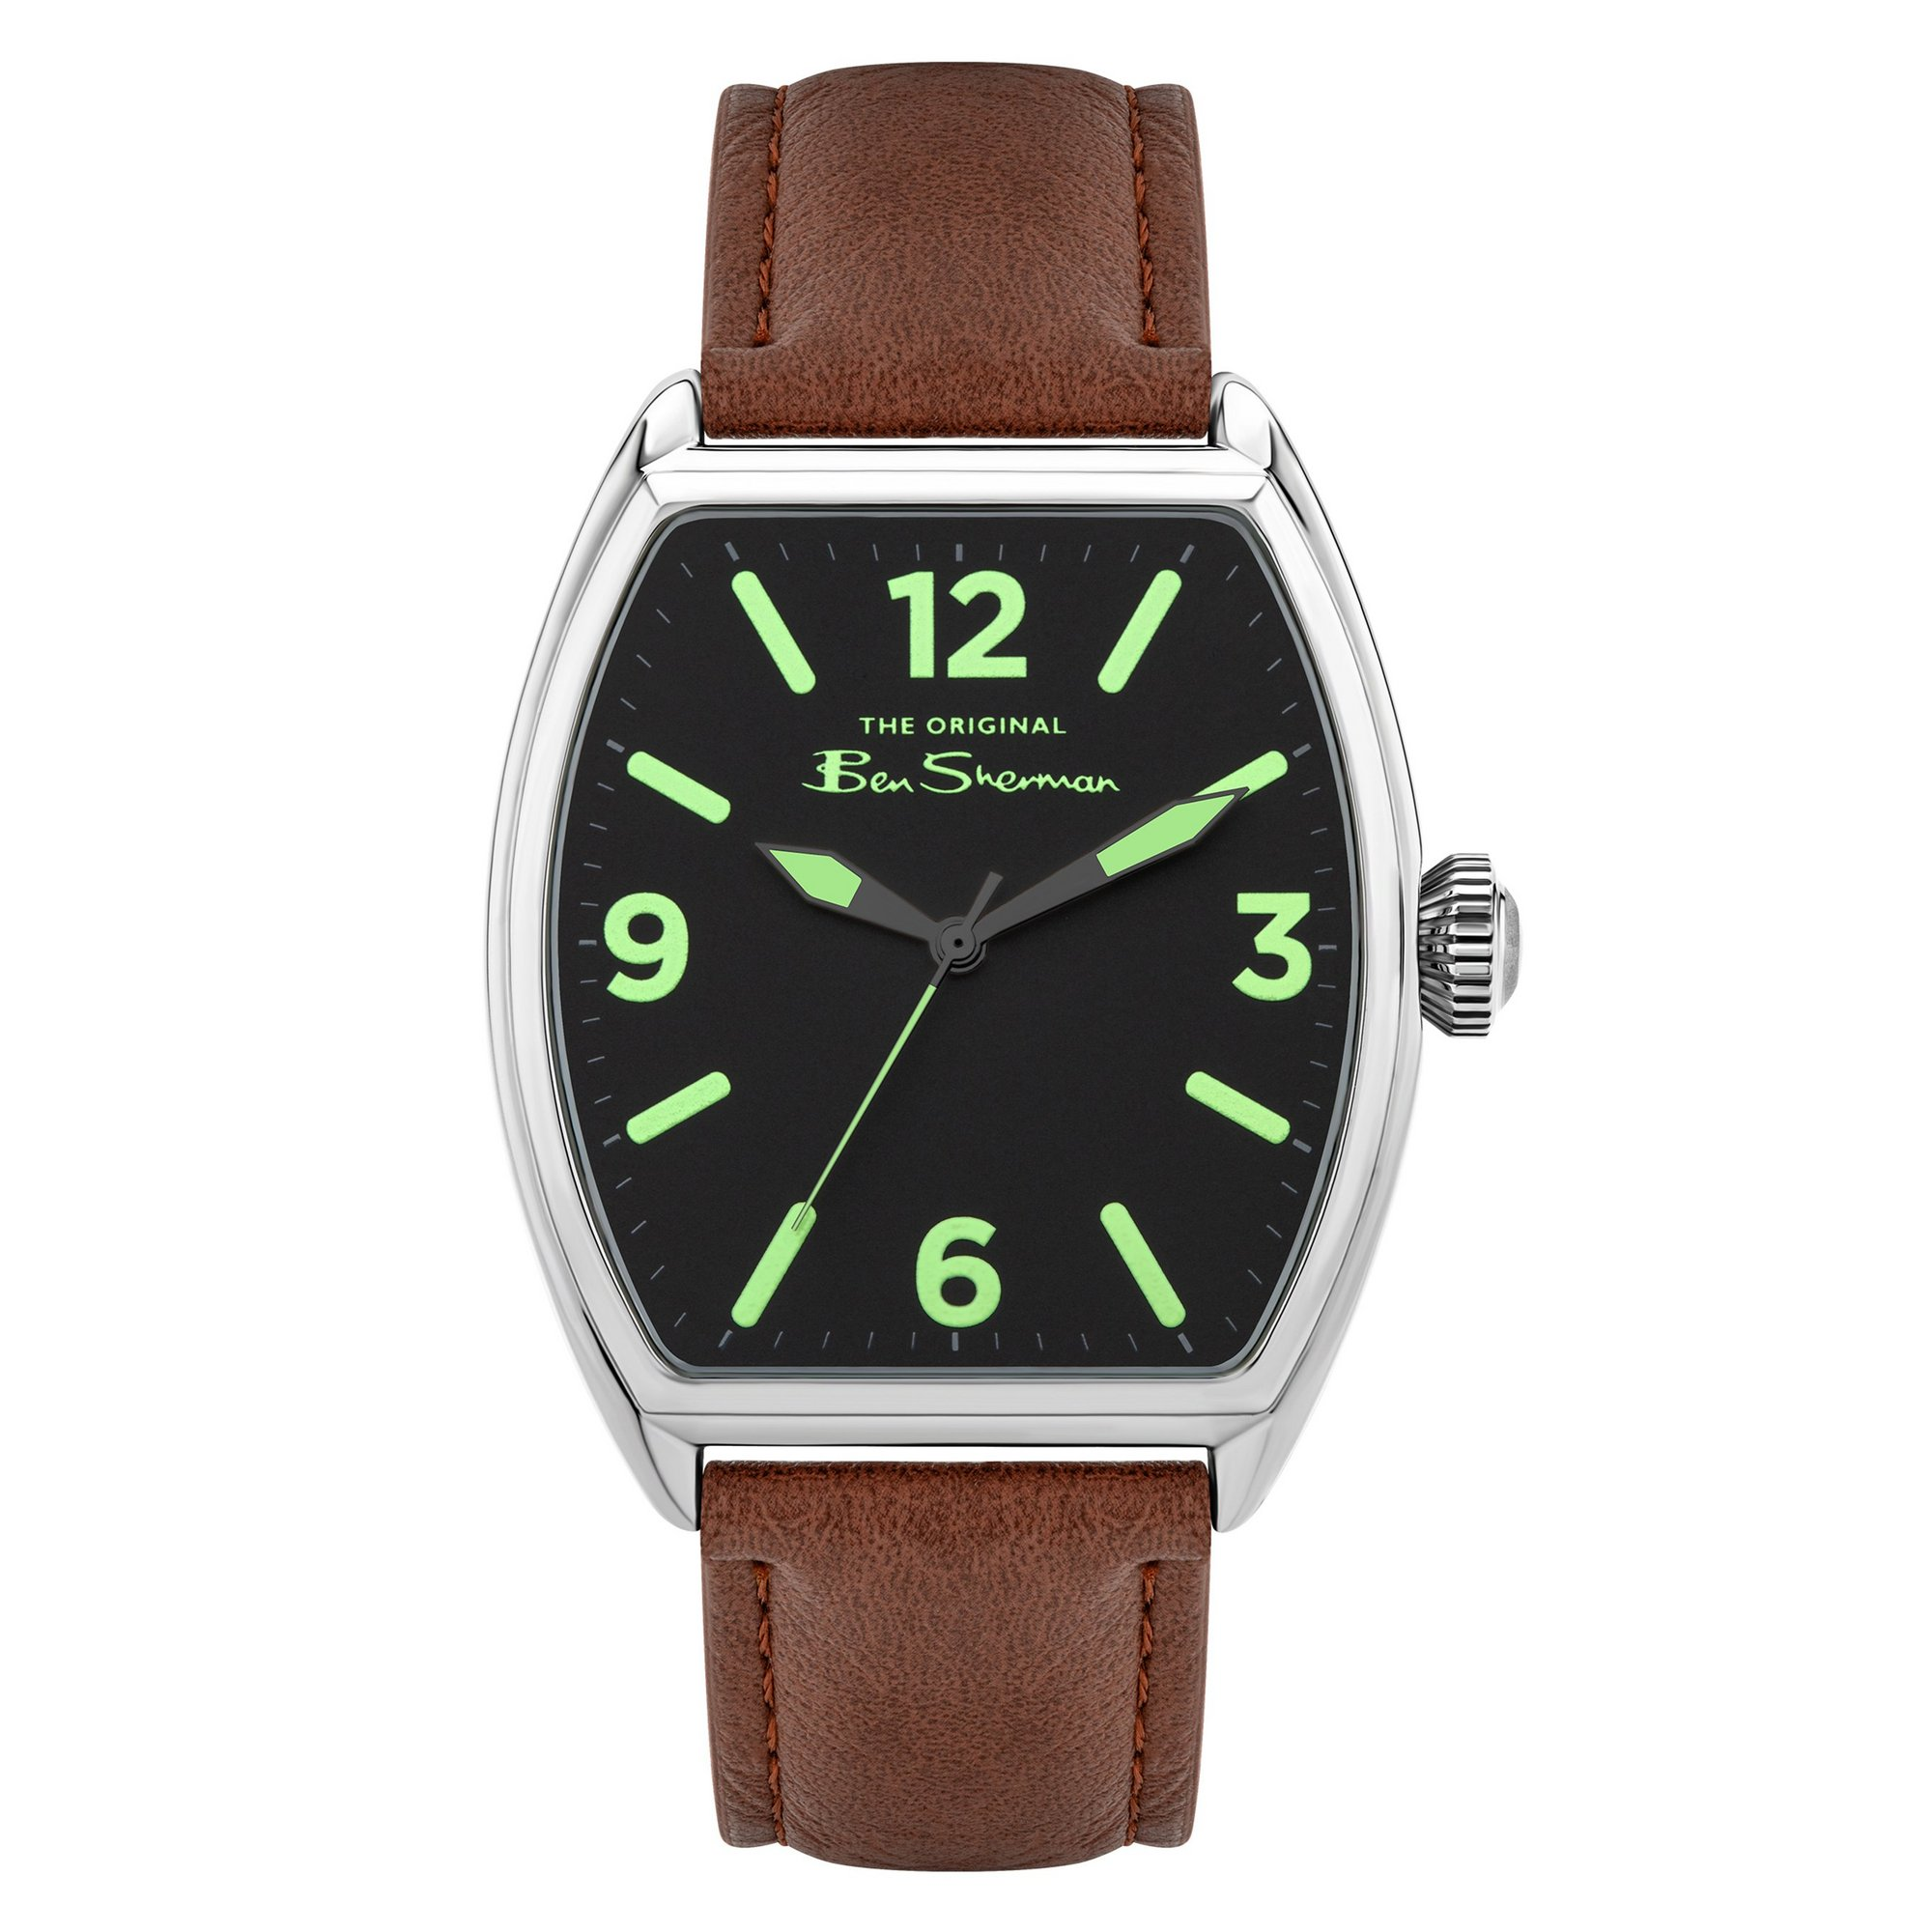 Image of Ben Sherman Watch with a Brown Strap and Rectangular Dial